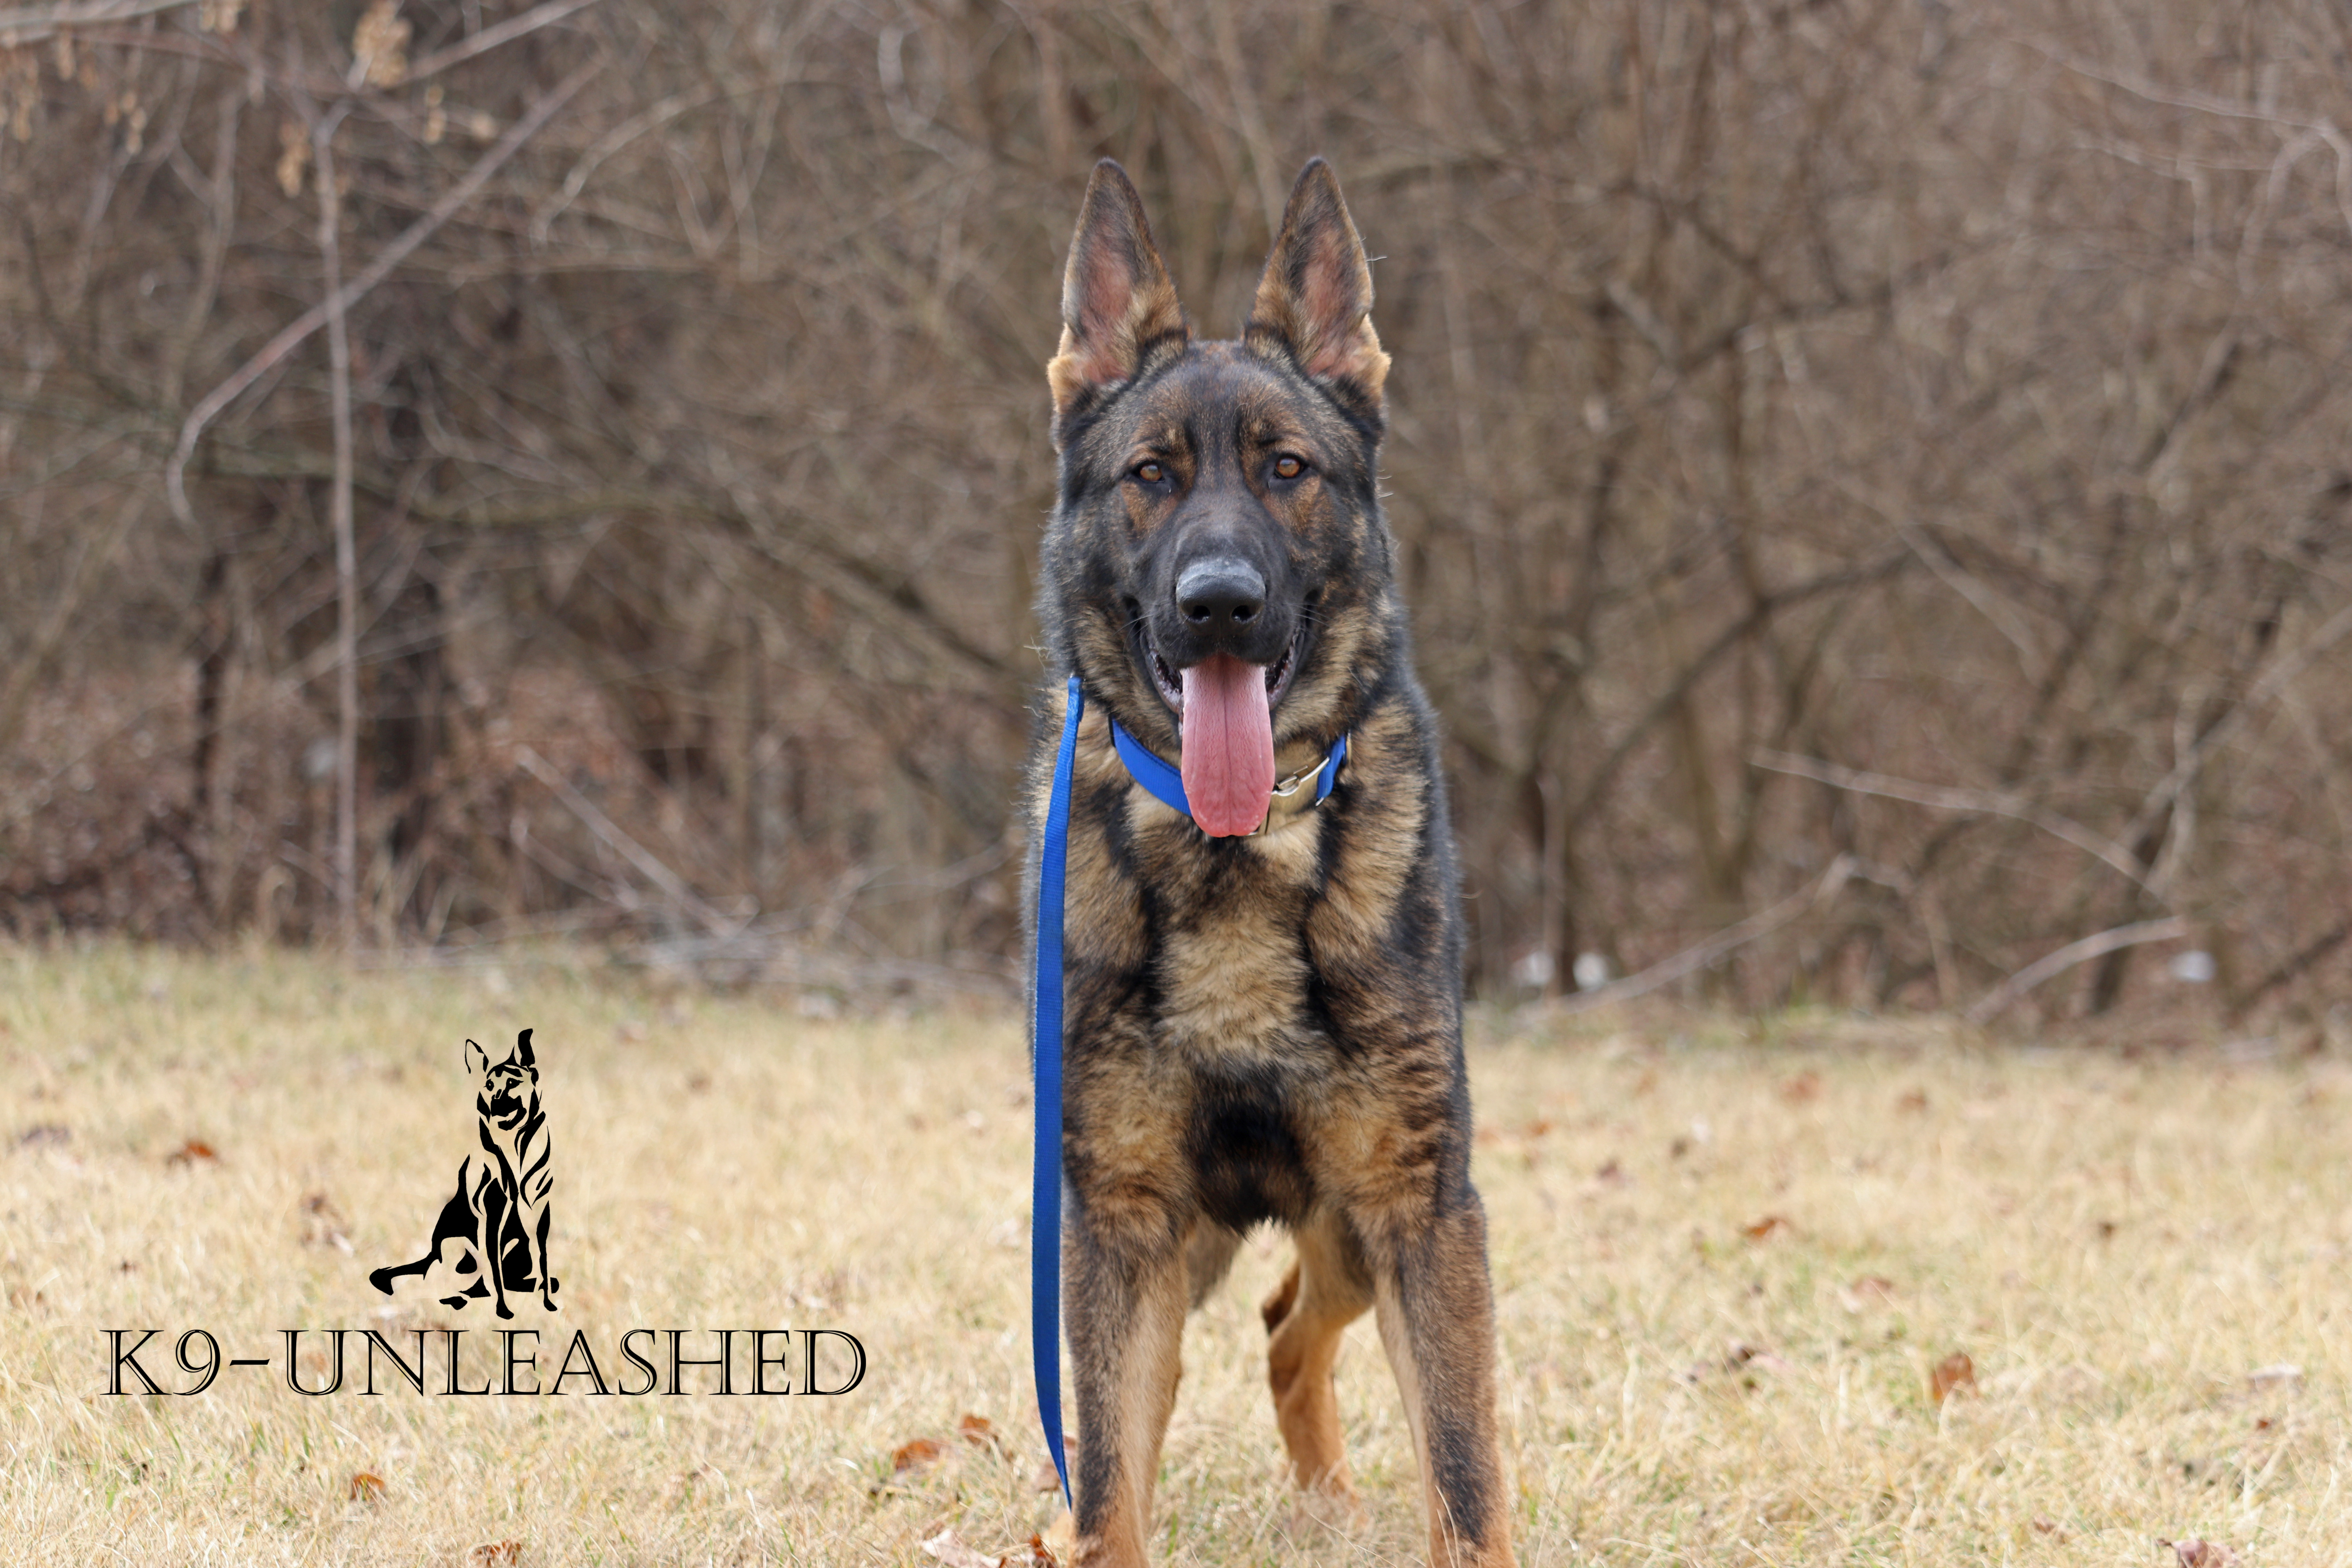 K9 Puppy, Stand, K9 Unleashed